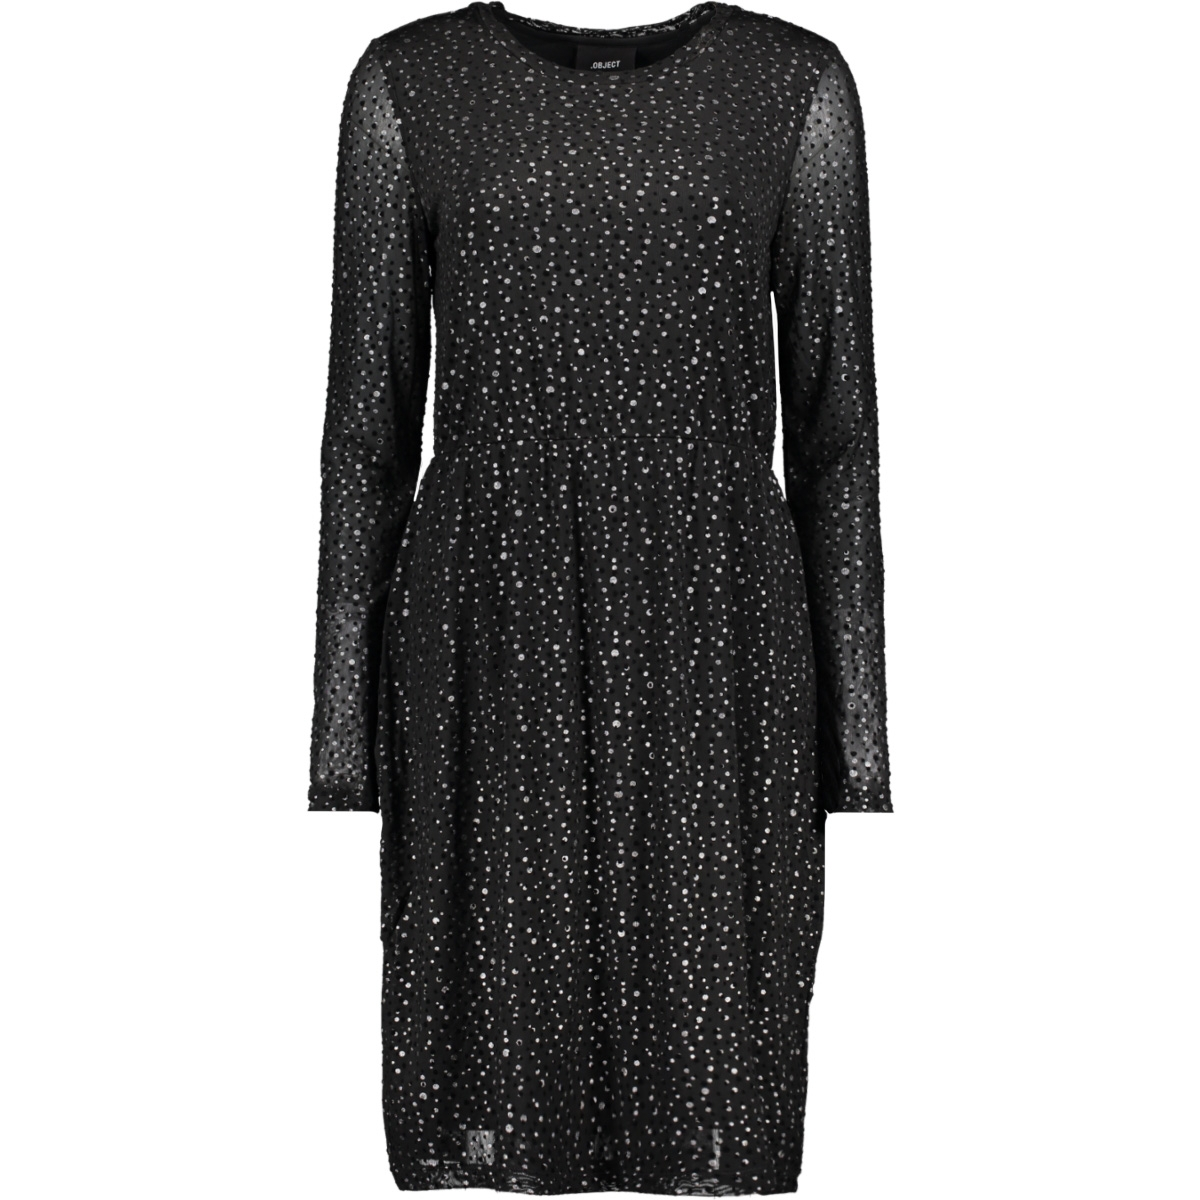 objmonroe new mariann l/s dress 100 23029121 object jurk black